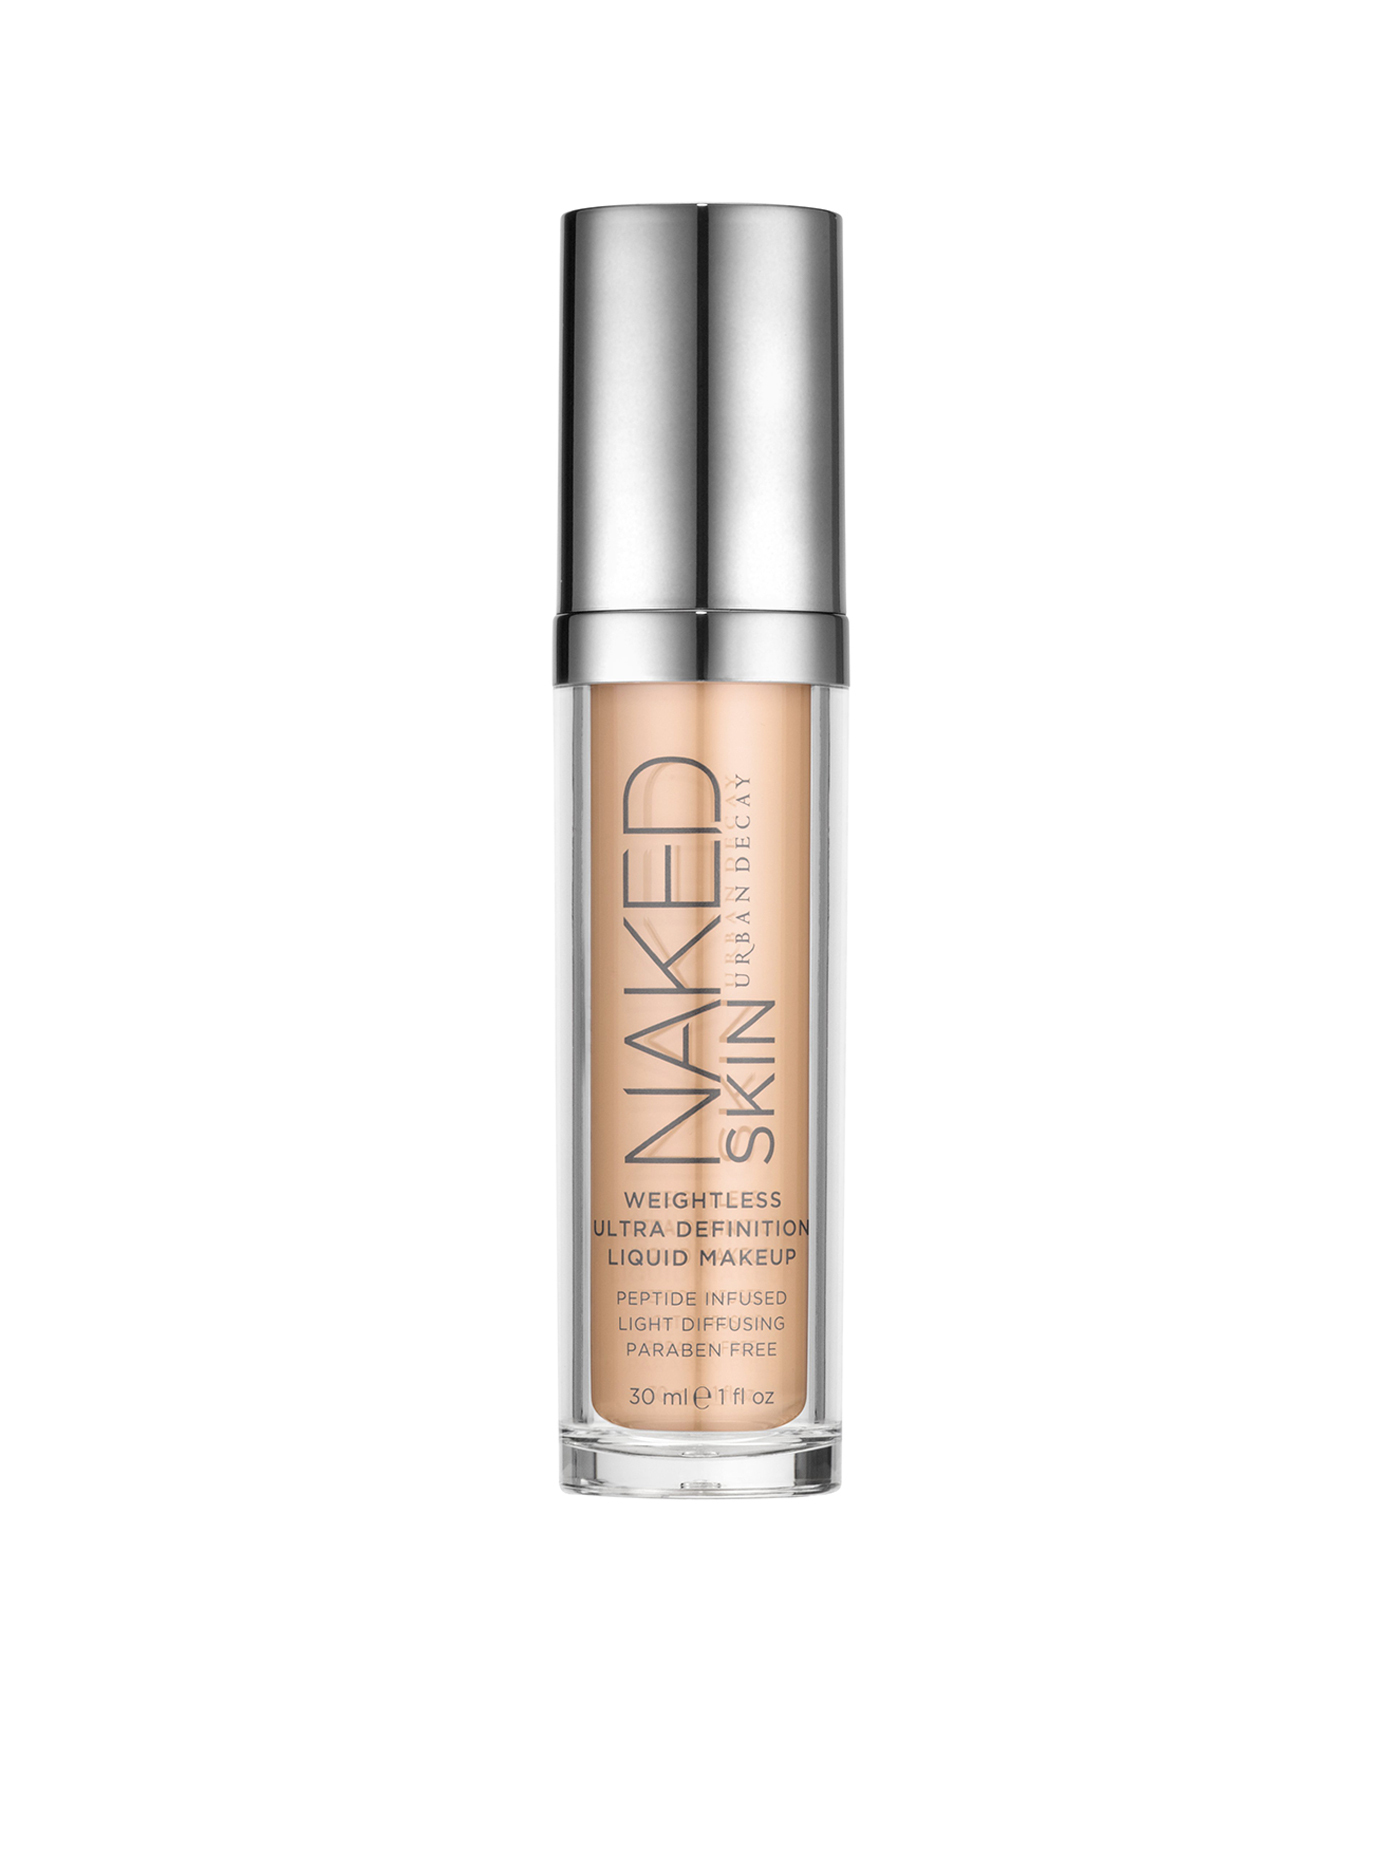 URBAN DECAY NAKED リキッド・ ファンデーション #6.0 送料無料